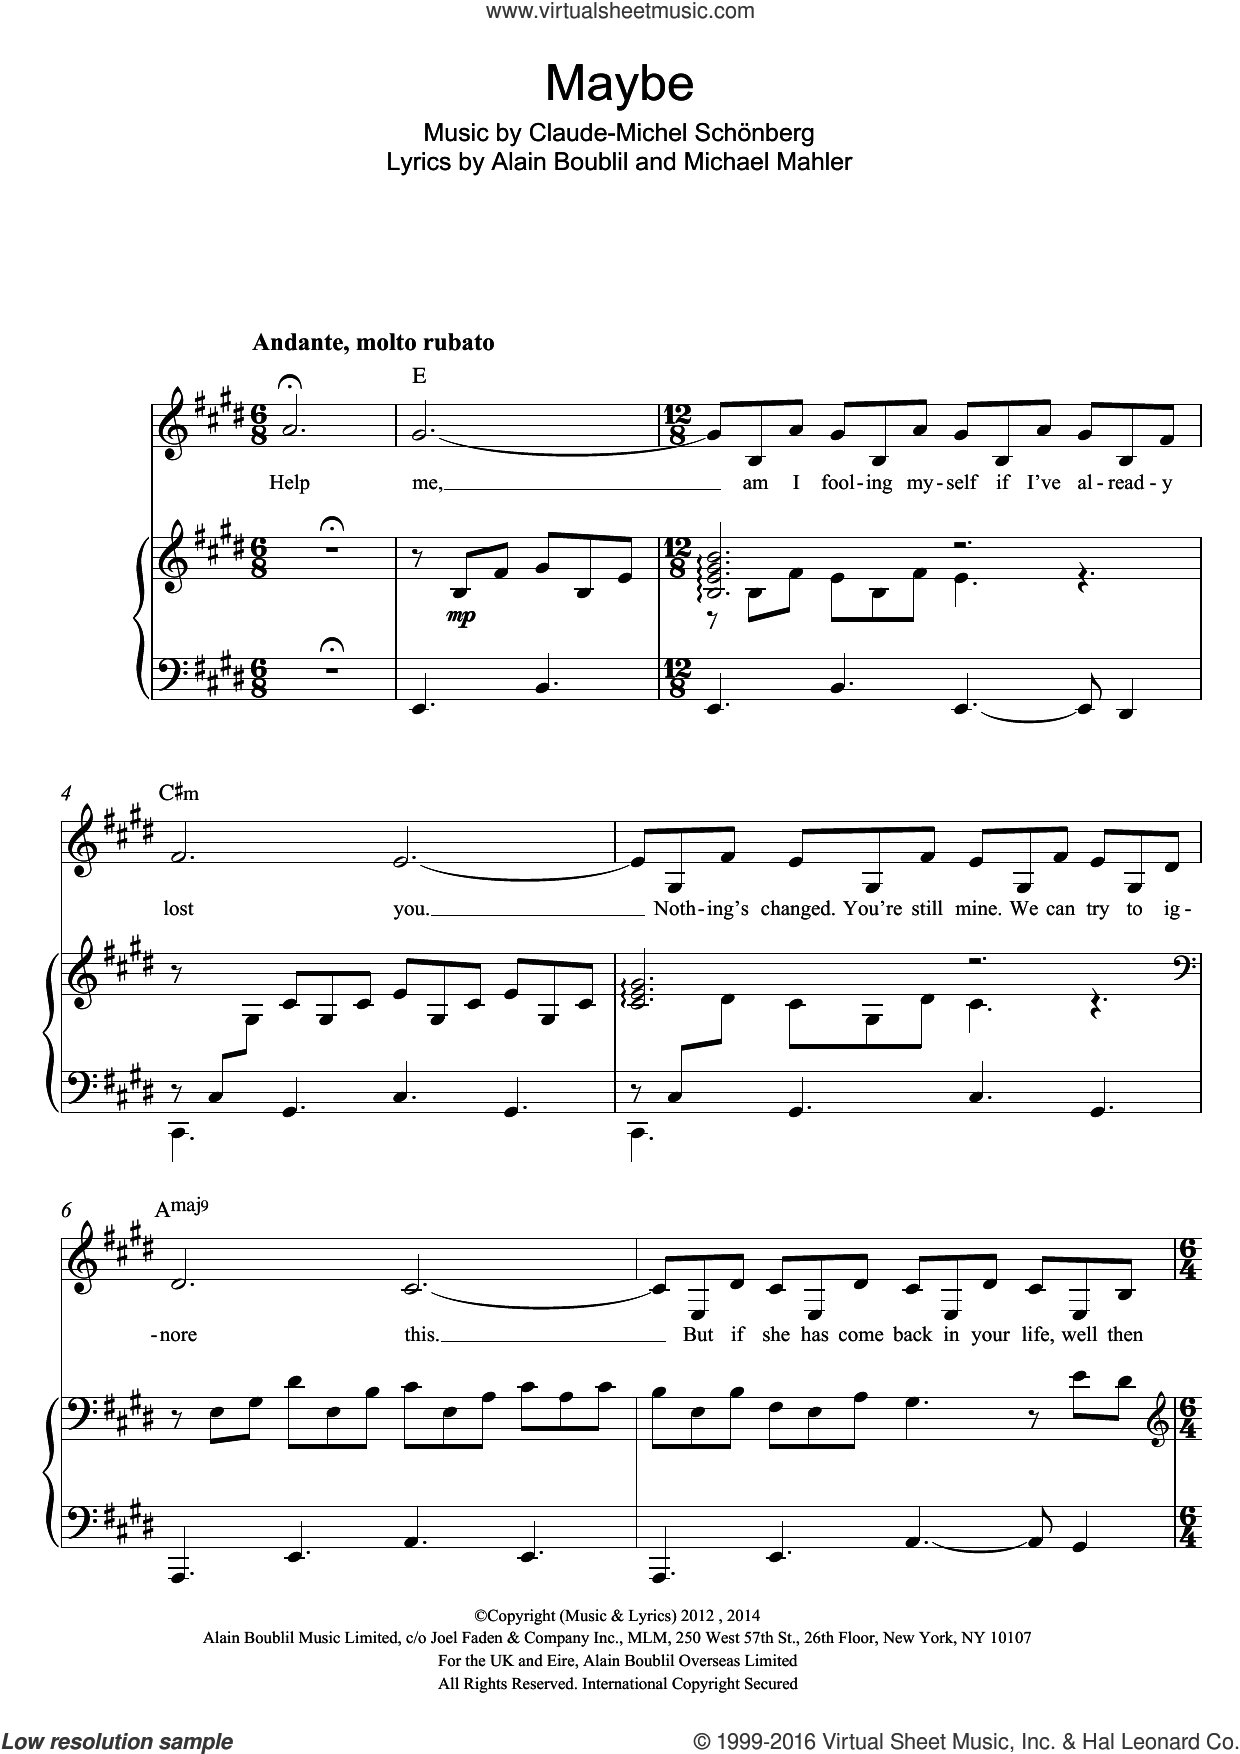 Maybe (from Miss Saigon) sheet music for voice and piano by Boublil and Schonberg, Claude-Michel Schönberg, Claude-Michel Schonberg, Alain Boublil and Michael Mahler, intermediate skill level